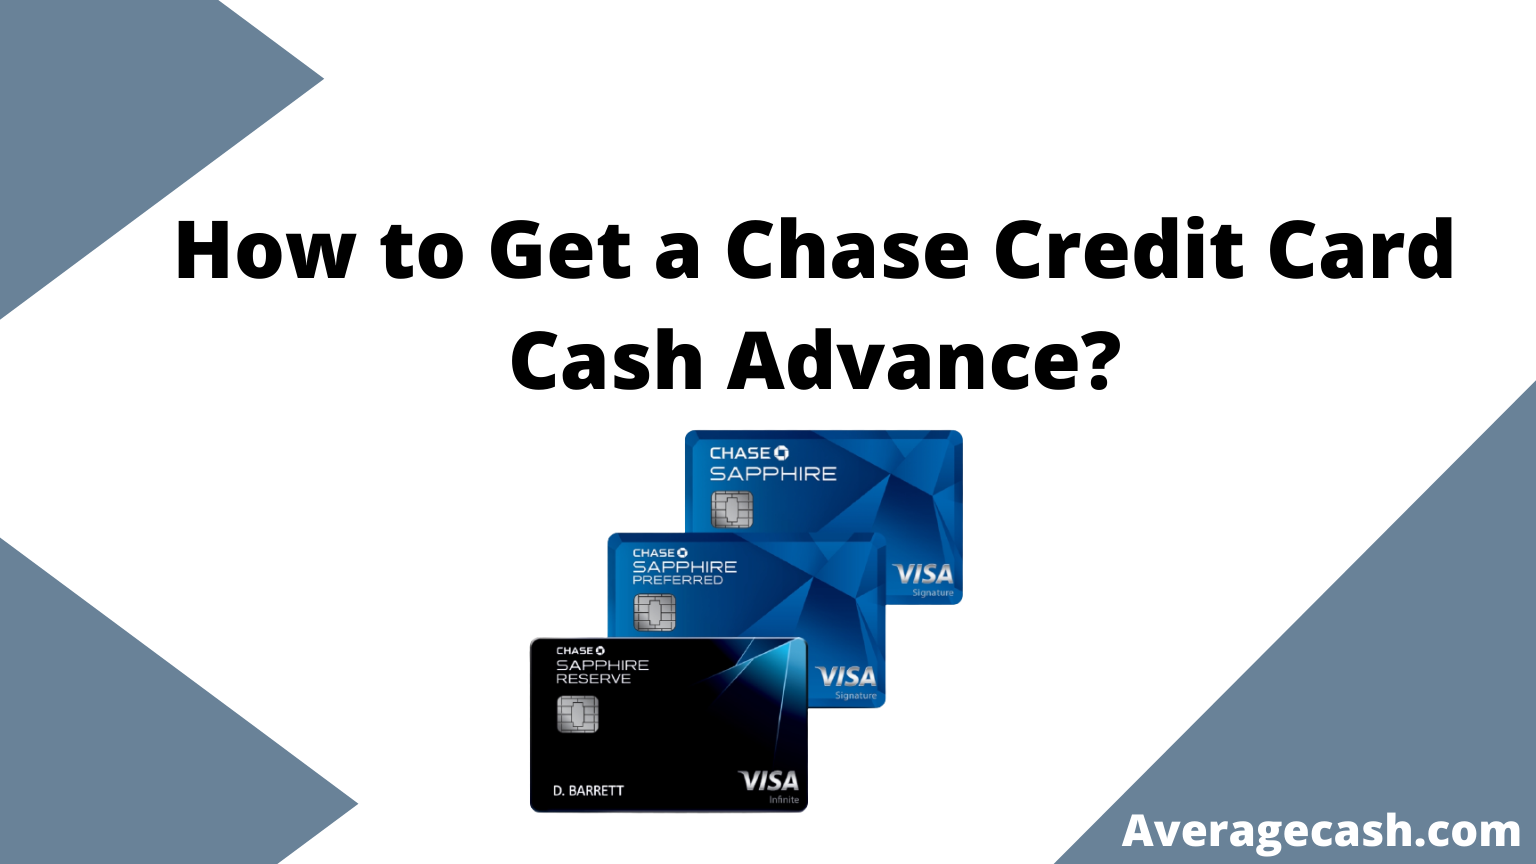 How to Get a Chase Credit Card Cash Advance (Fee, Limit & APR)